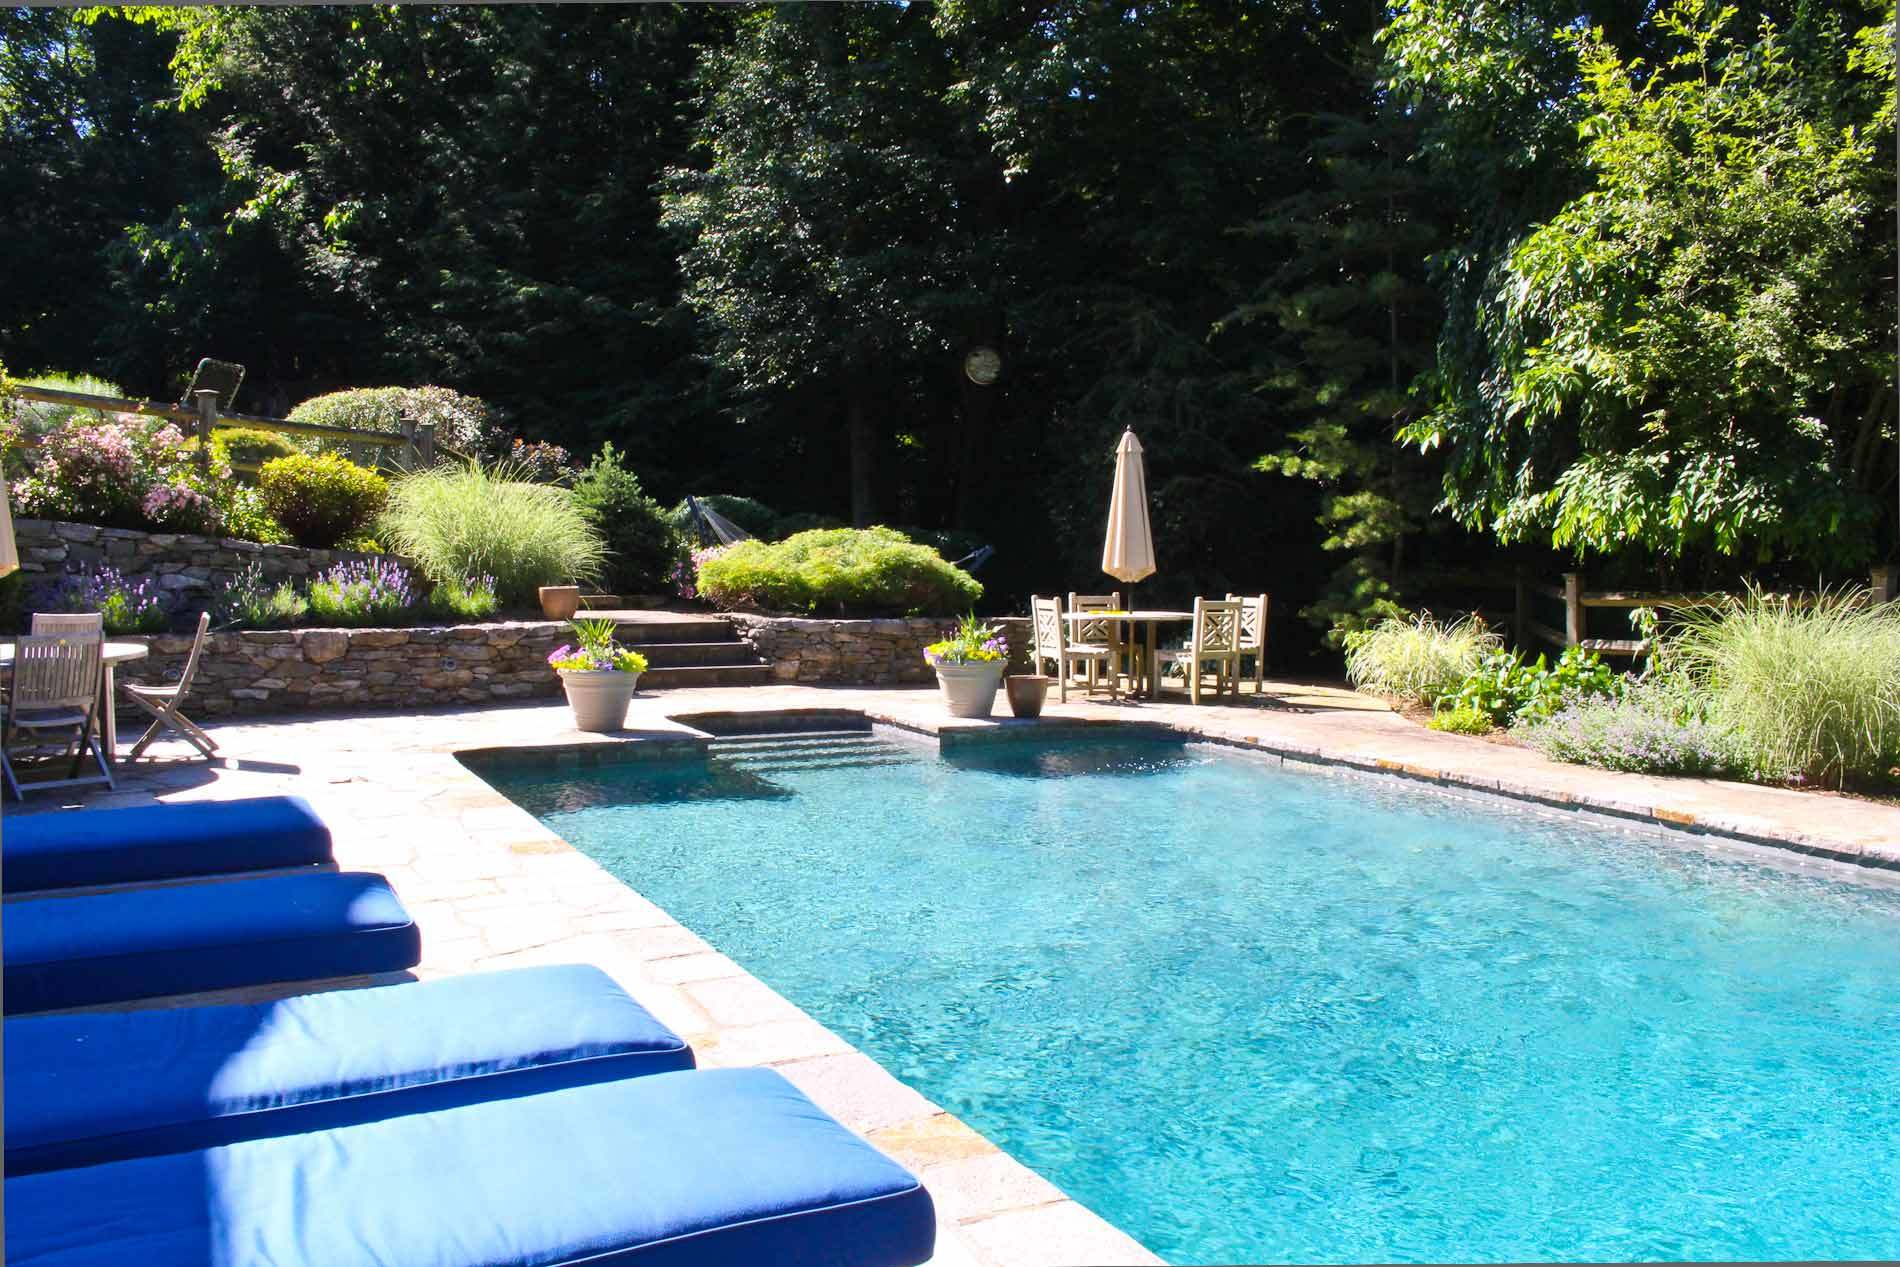 Homes With Swimming Pool For Sale In Fairfield Ct Find And Buy